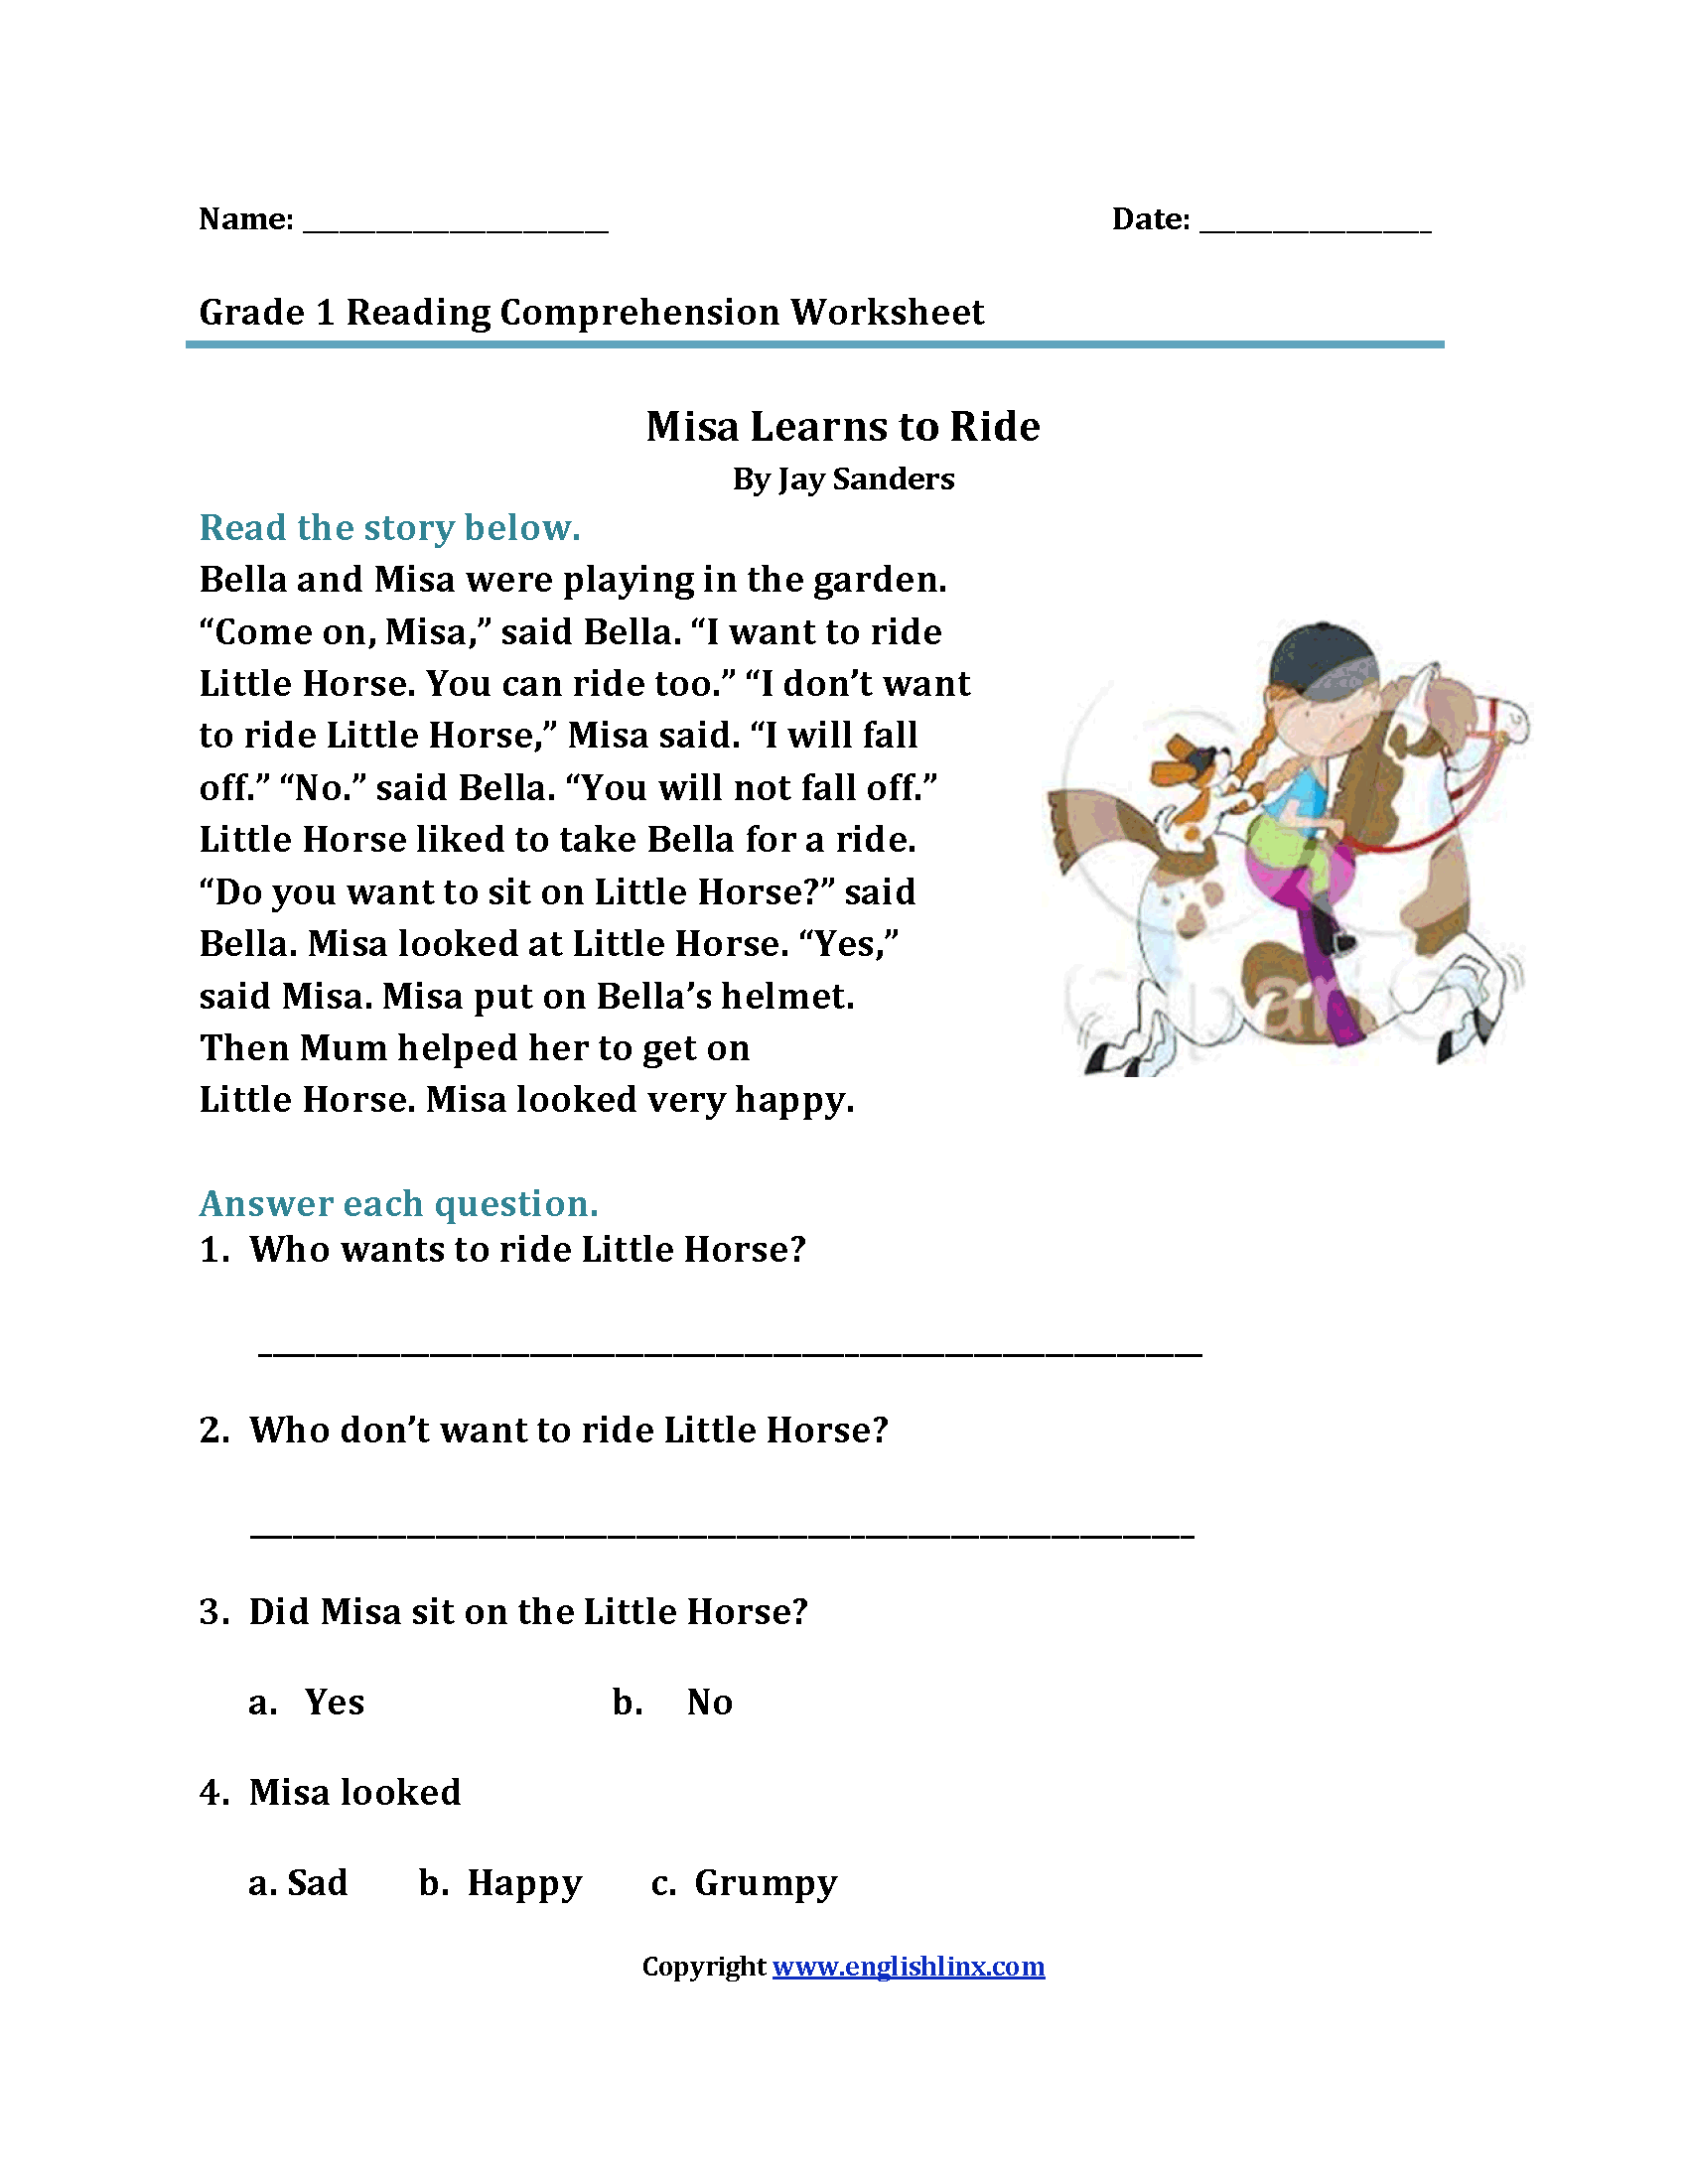 Misa Learns To Ride First Grade Reading Worksheets With